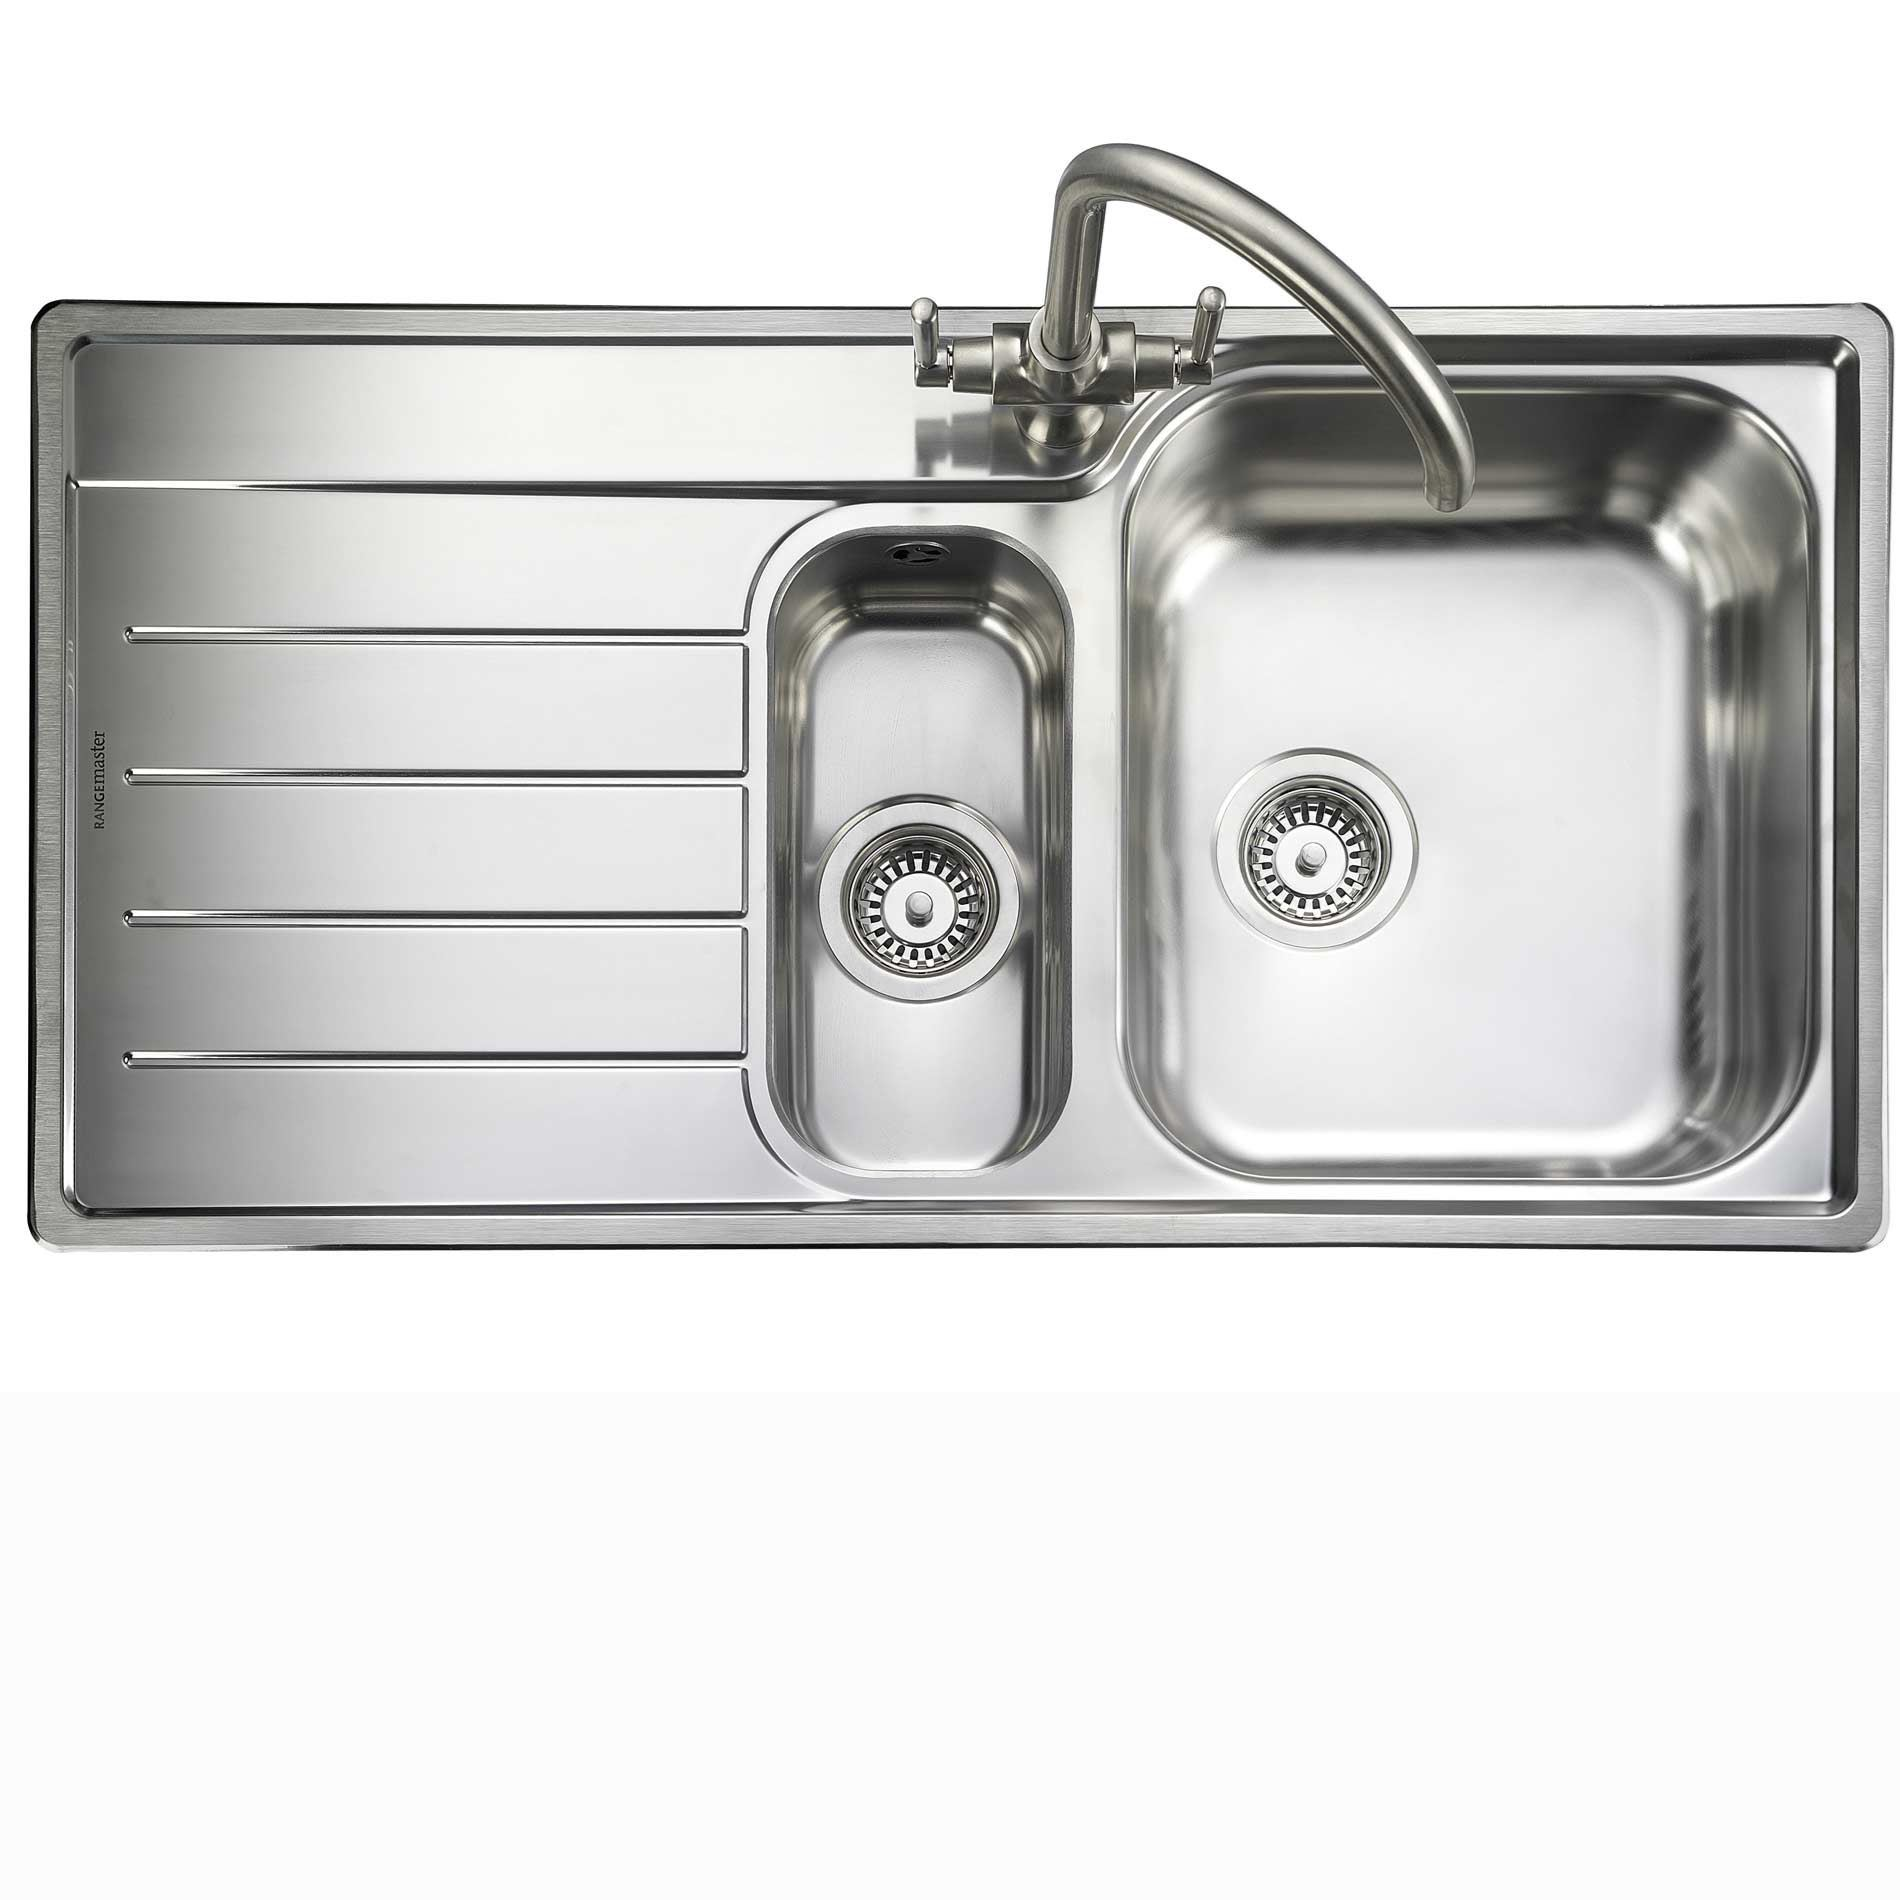 Picture Of Oakland OL9852 Stainless Steel Sink